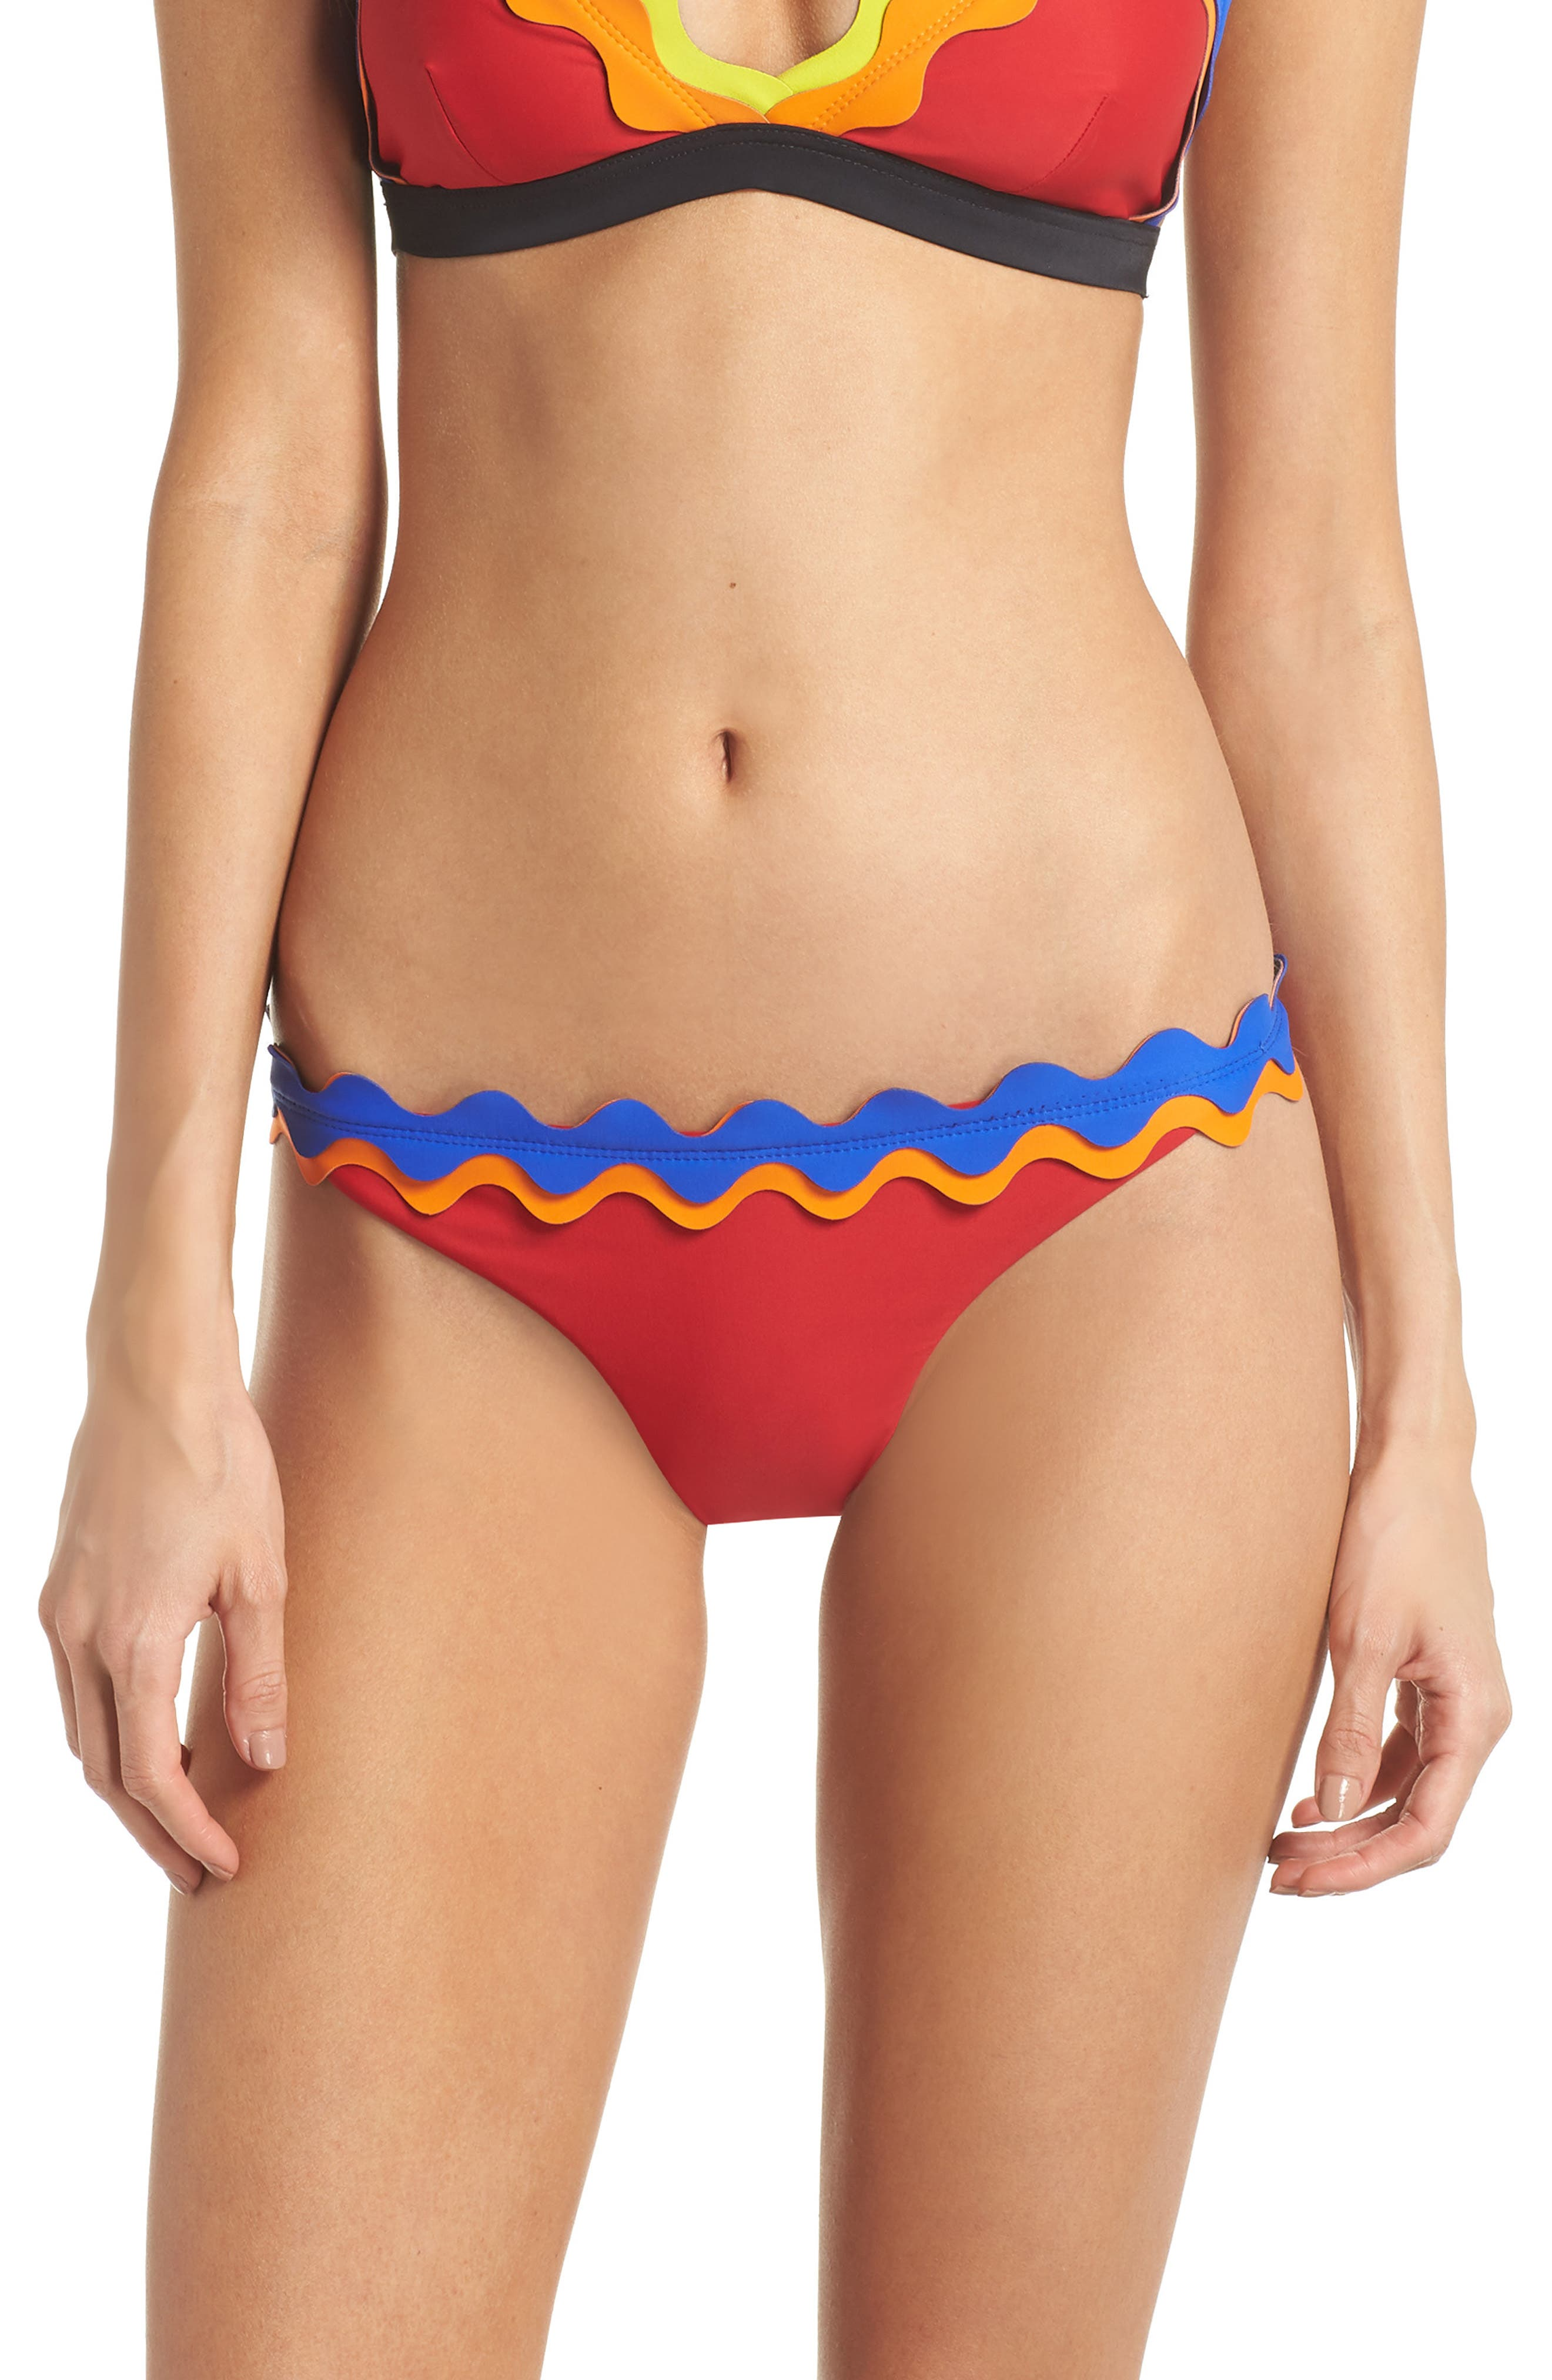 Cackle Bikini Bottoms,                         Main,                         color, Red